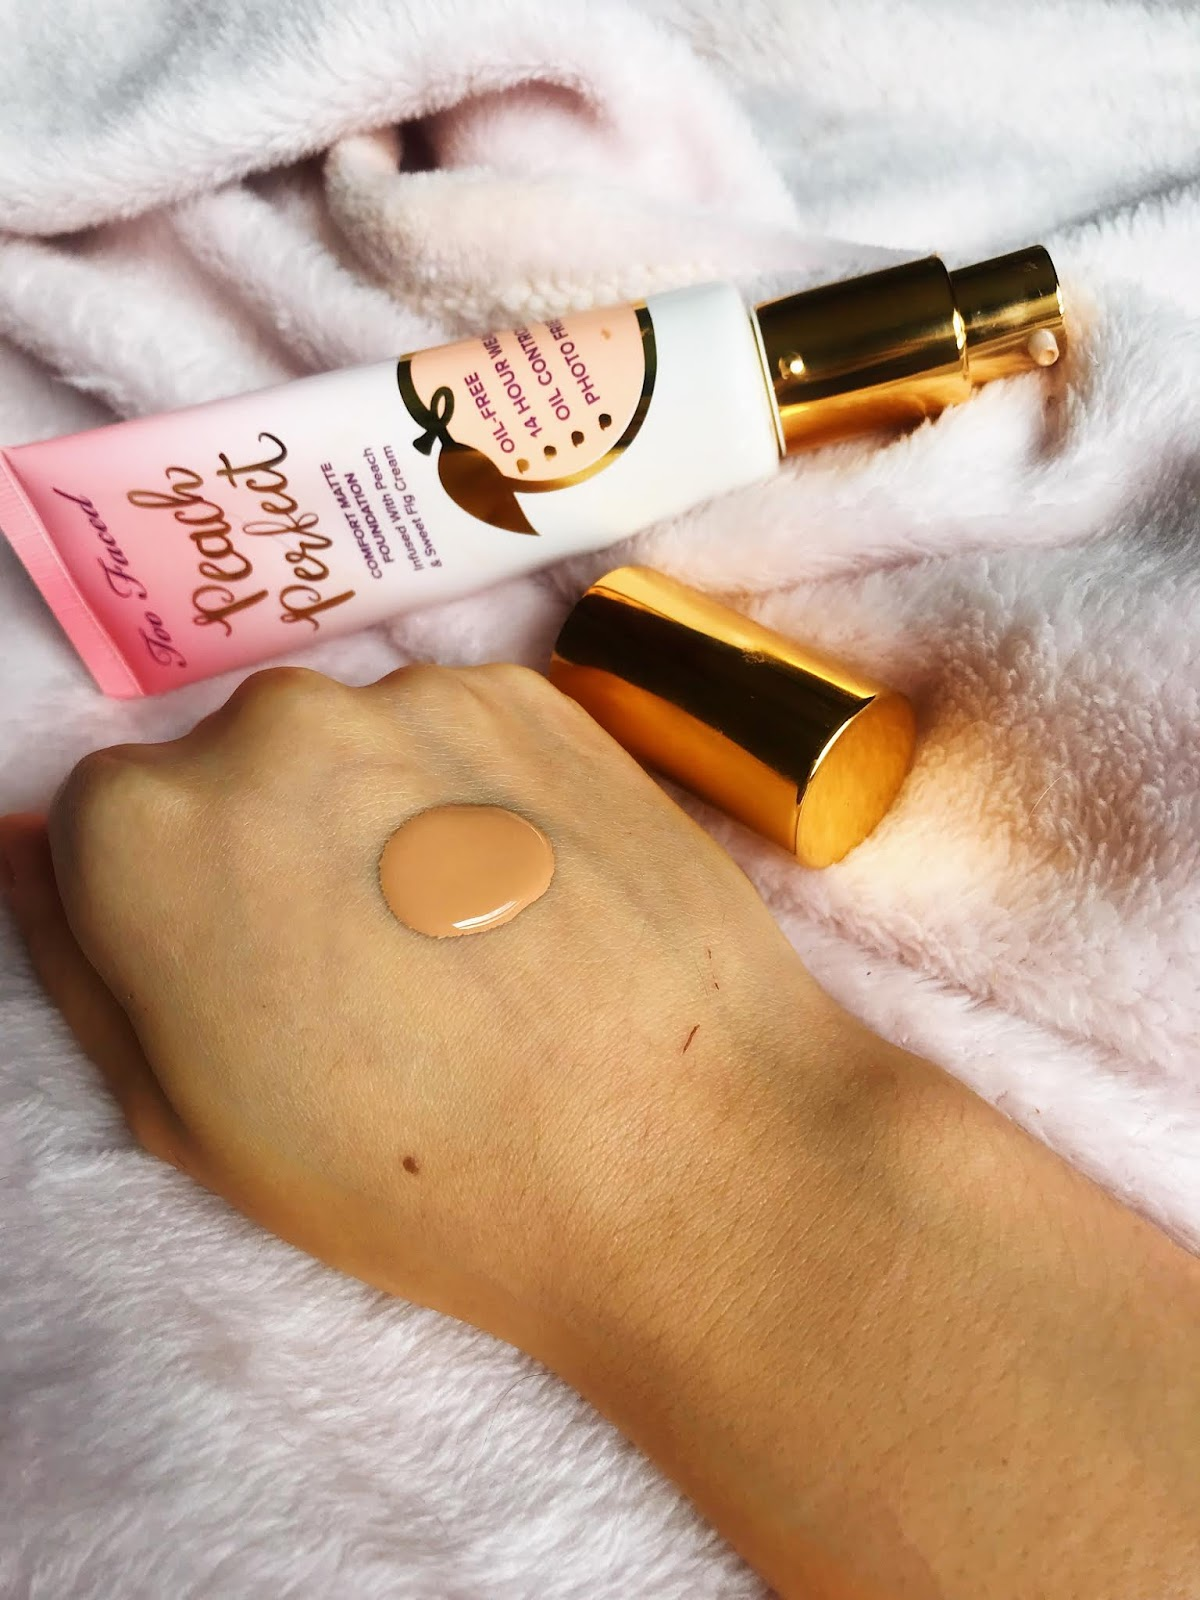 Everything's Peachy: Too Faced Foundation Review